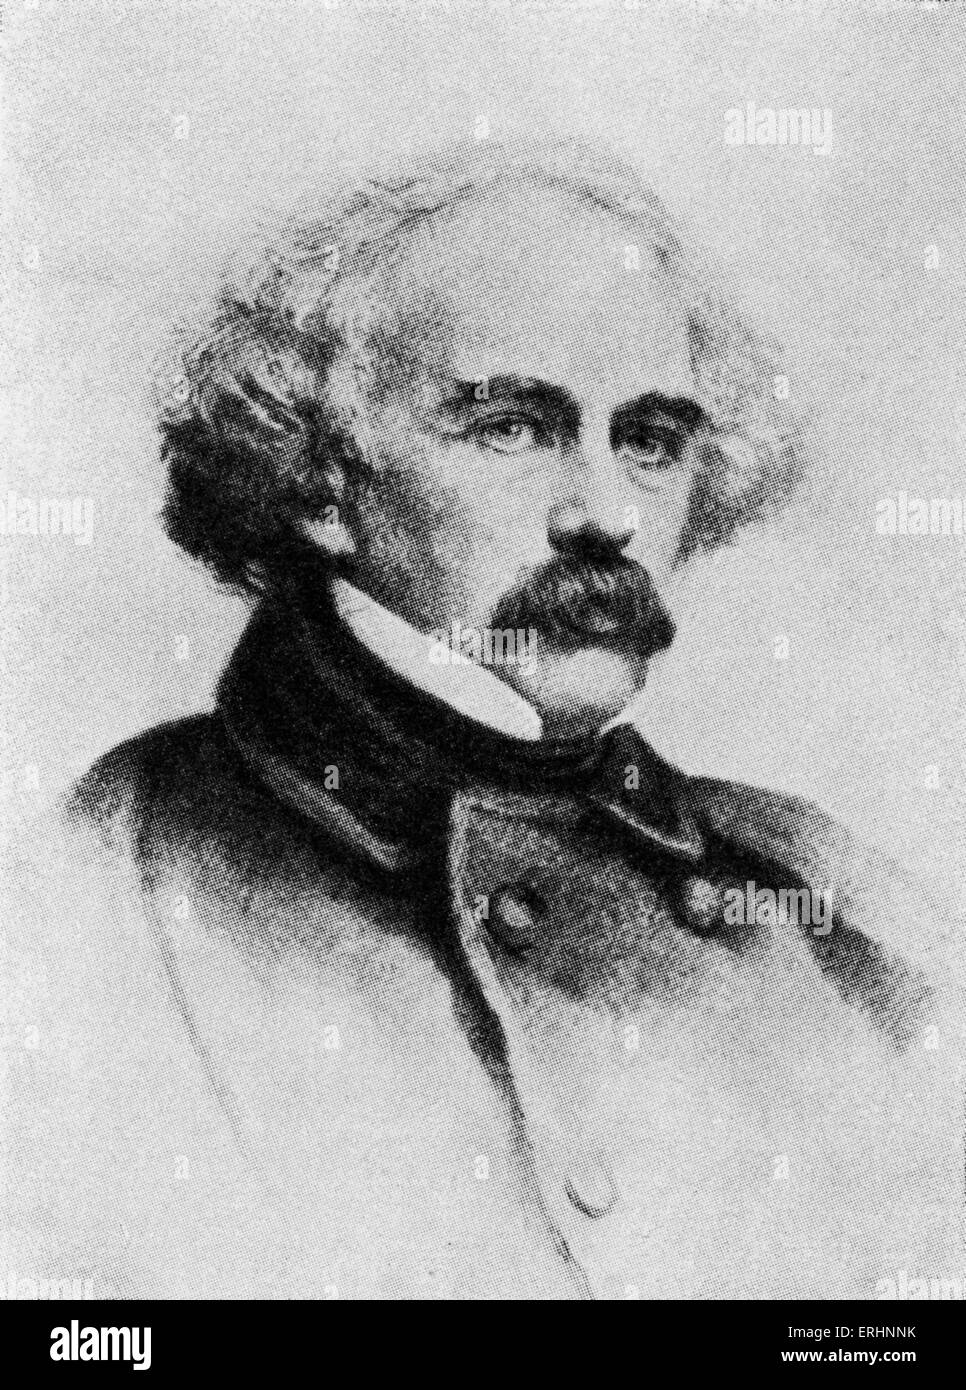 a biography of nathaniel hawthorne the american novelist Nathaniel hawthorne biography - download as pdf file (pdf), text file (txt) or read online editors were eager for his stories and one offered hackwork: in 1836, with the assistance of his sister elizabeth, hawthorne edited the american magazine of useful and entertaining knowledge and.